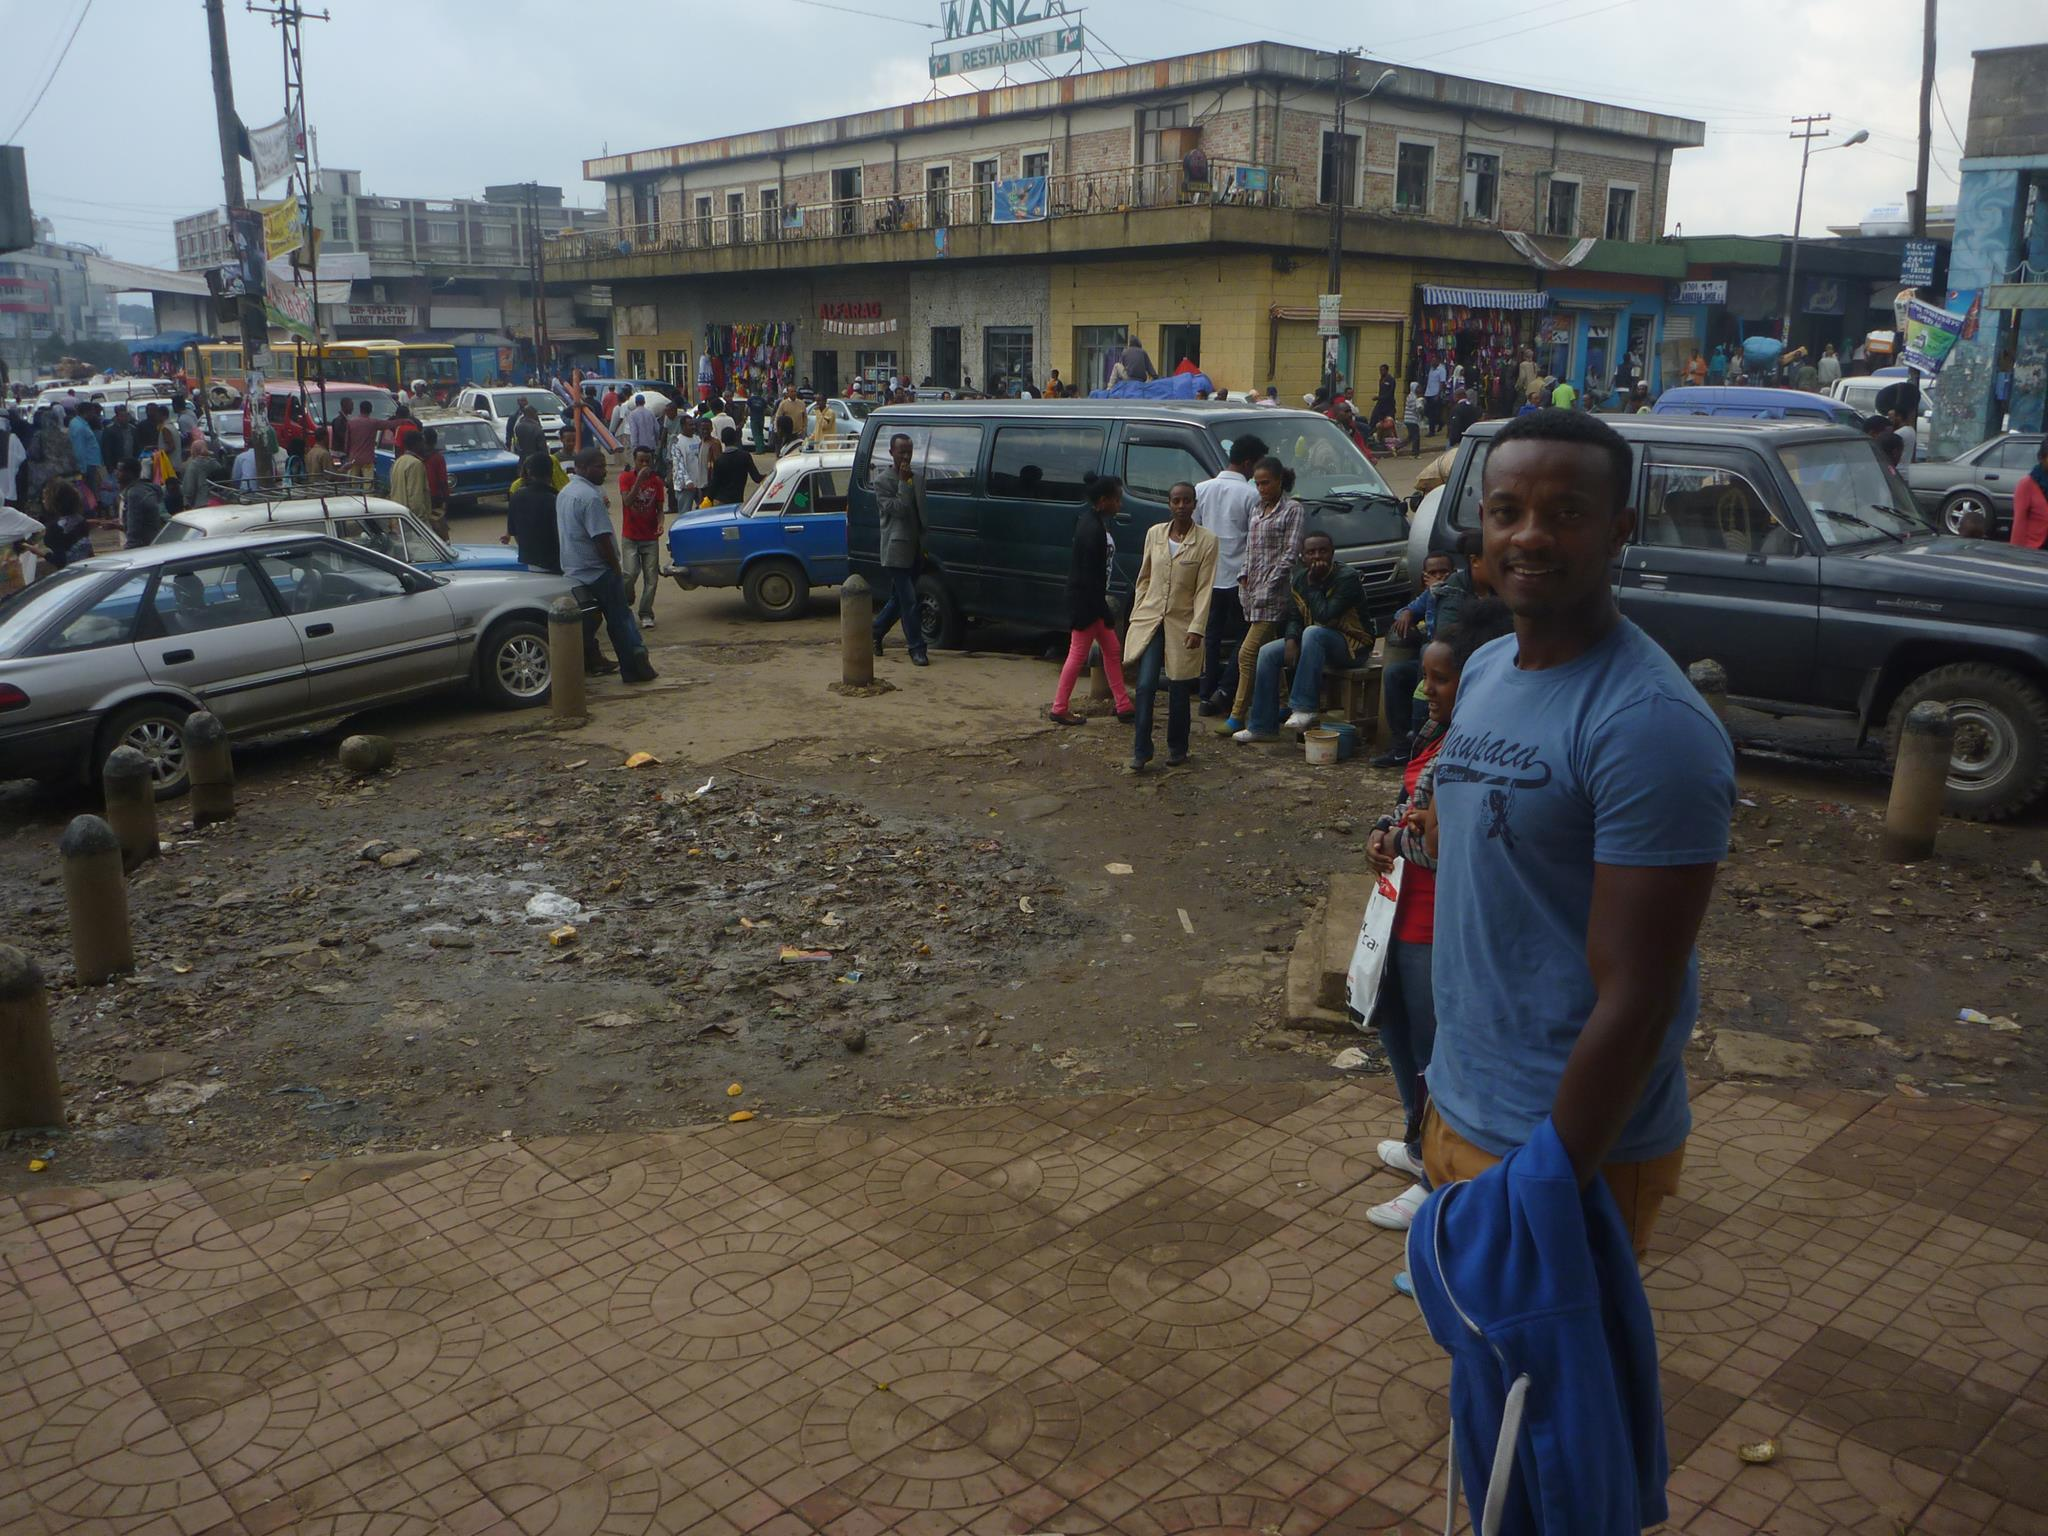 Merkato - biggest market in africa